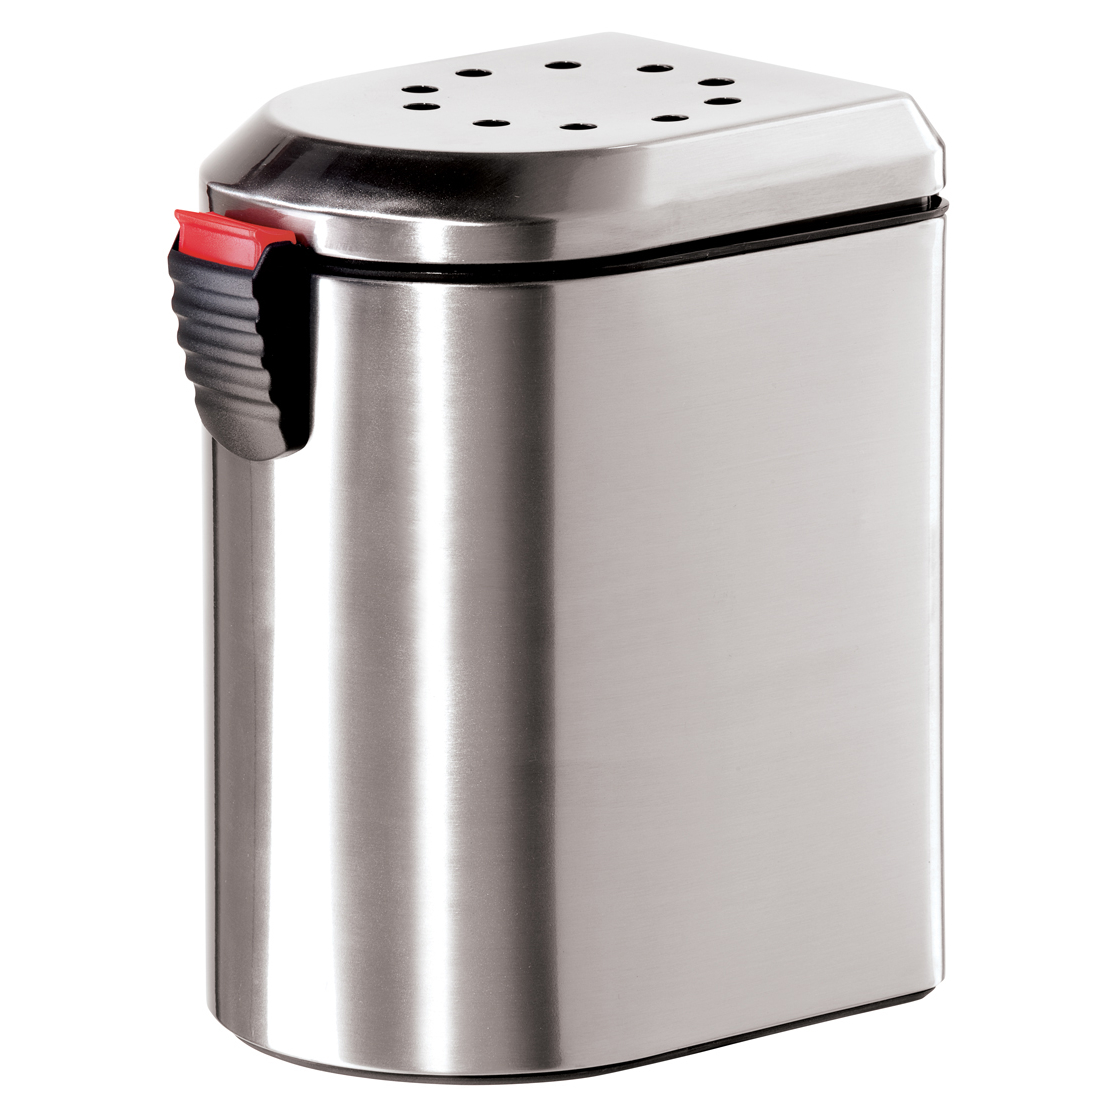 "Oggi Corporation 7289.0 10"" Stainless Steel Deluxe Countertop Compost Pail by OGGI CORPORATION"